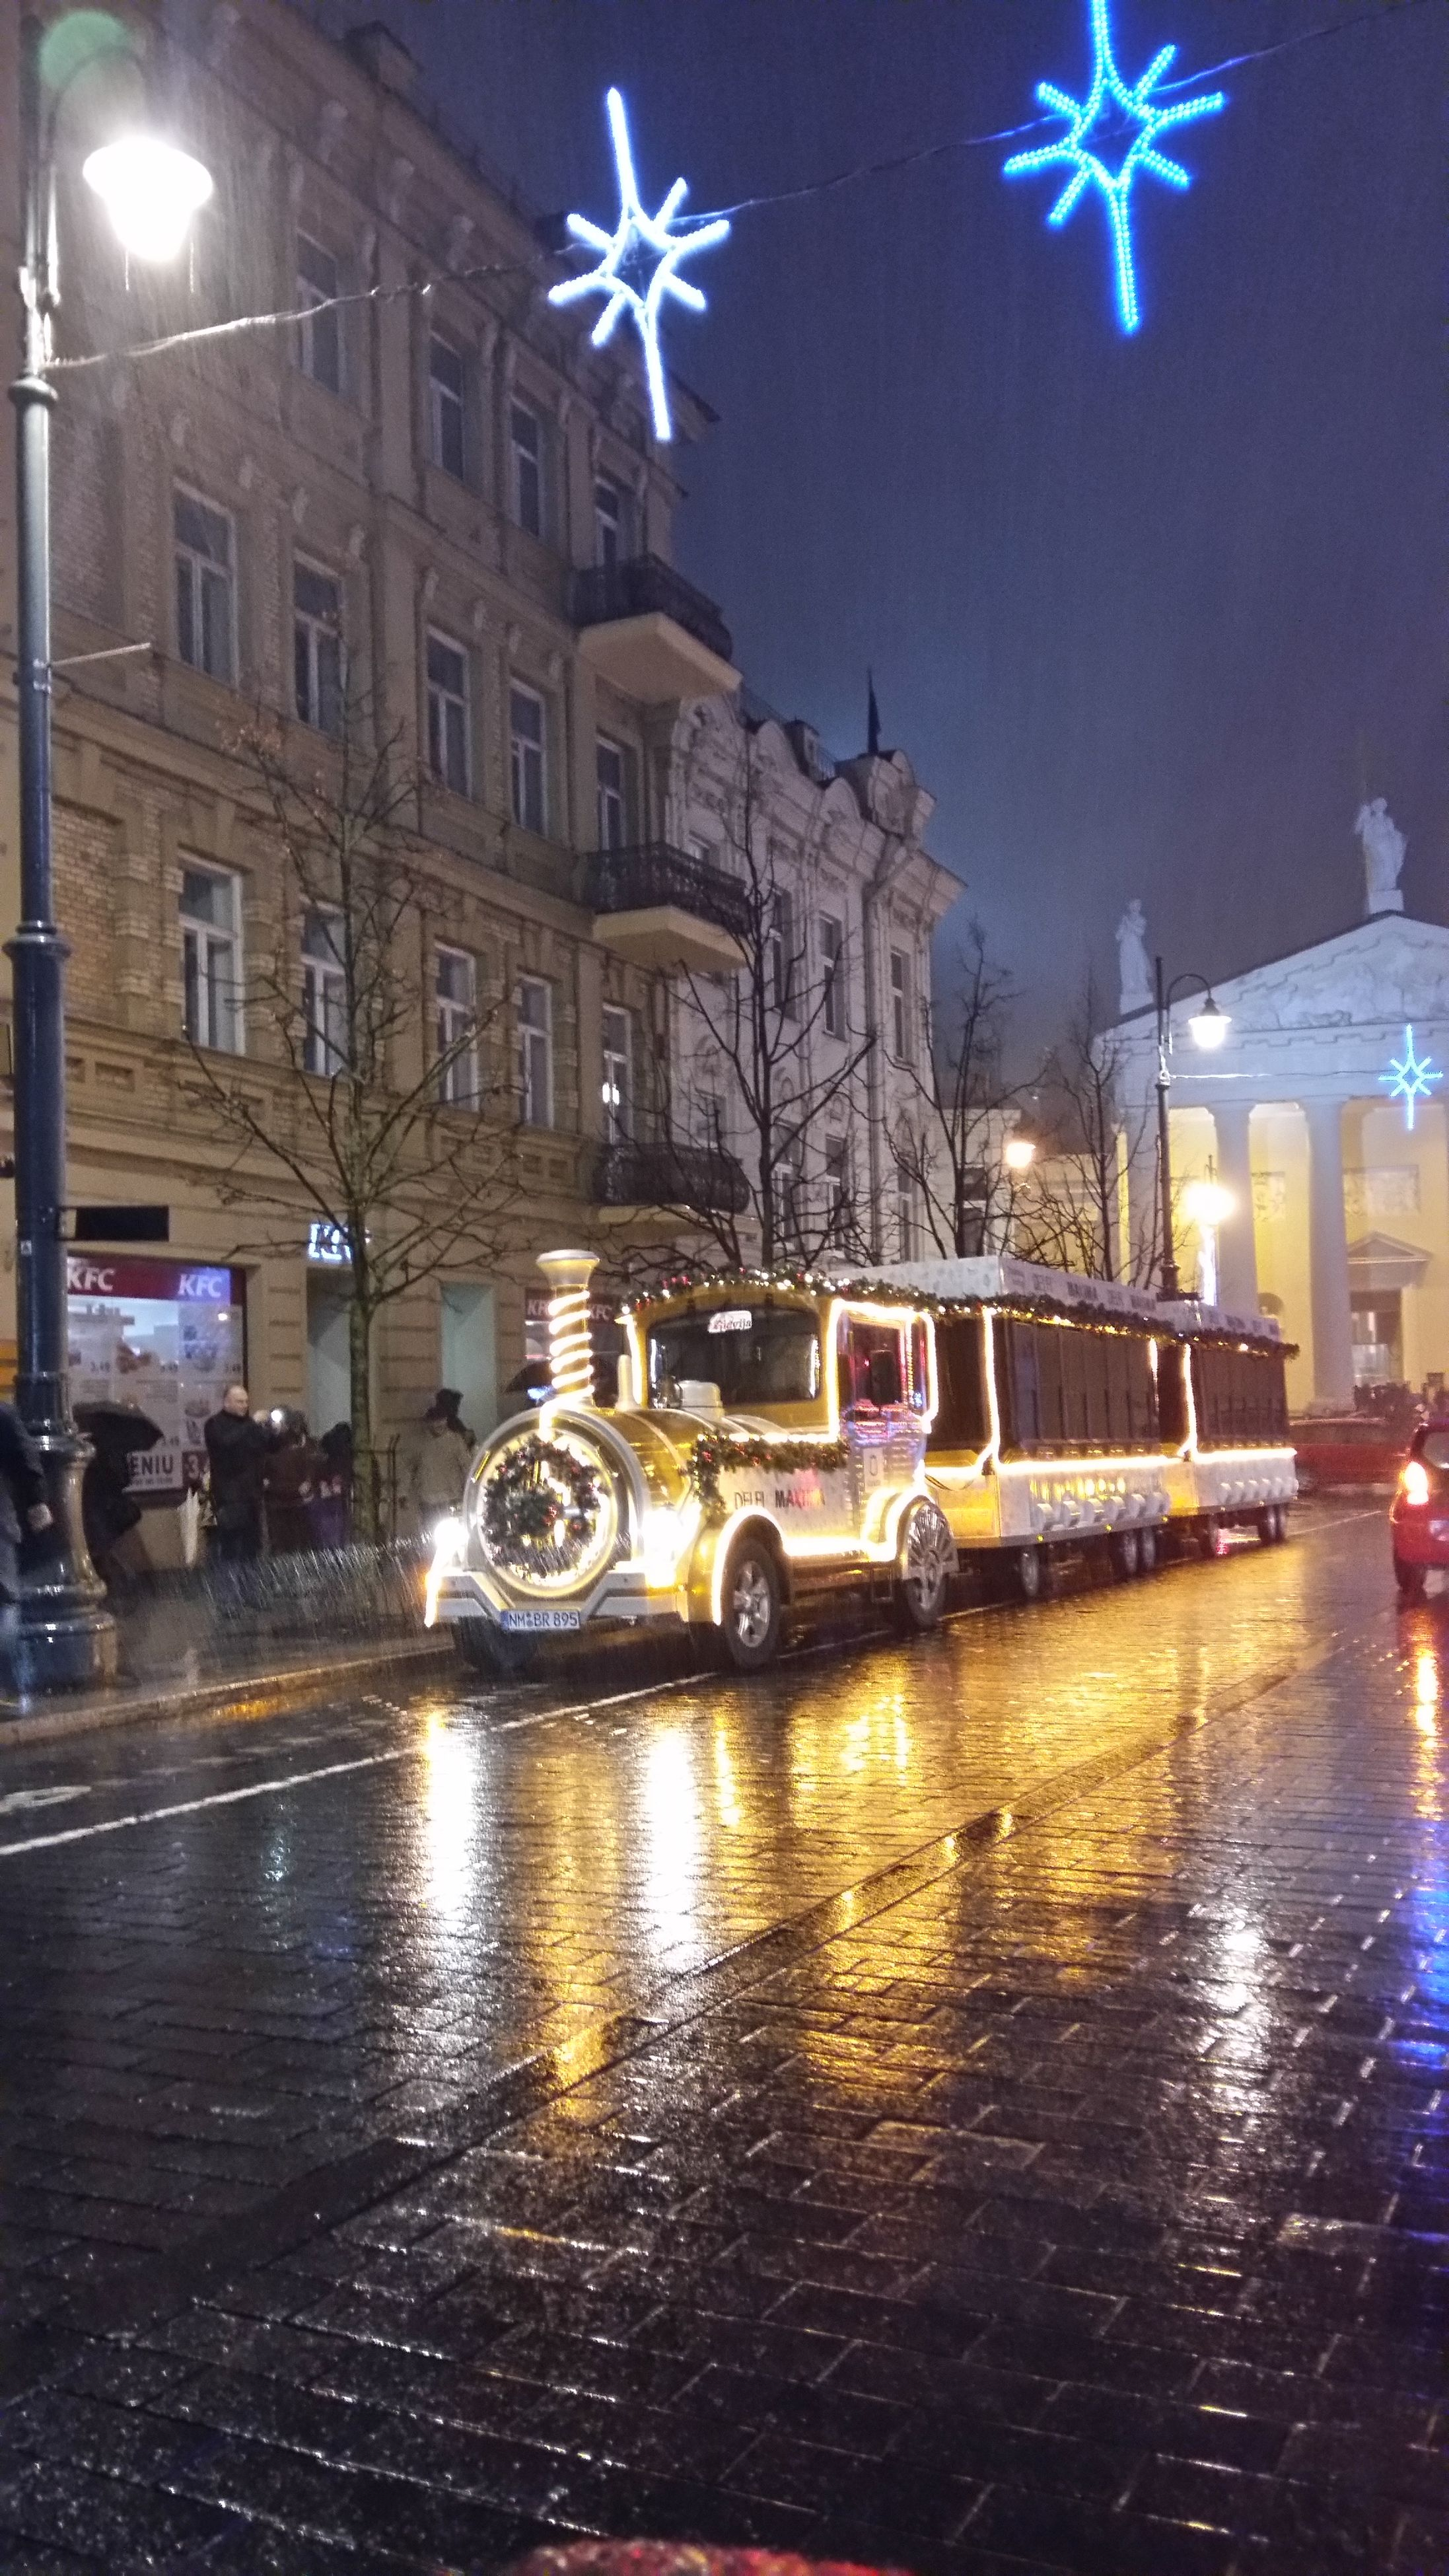 night, illuminated, reflection, winter, city, building exterior, street, snow, architecture, christmas, snowing, city street, cold temperature, built structure, transportation, car, water, christmas decoration, mode of transport, city life, puddle, outdoors, no people, christmas tree